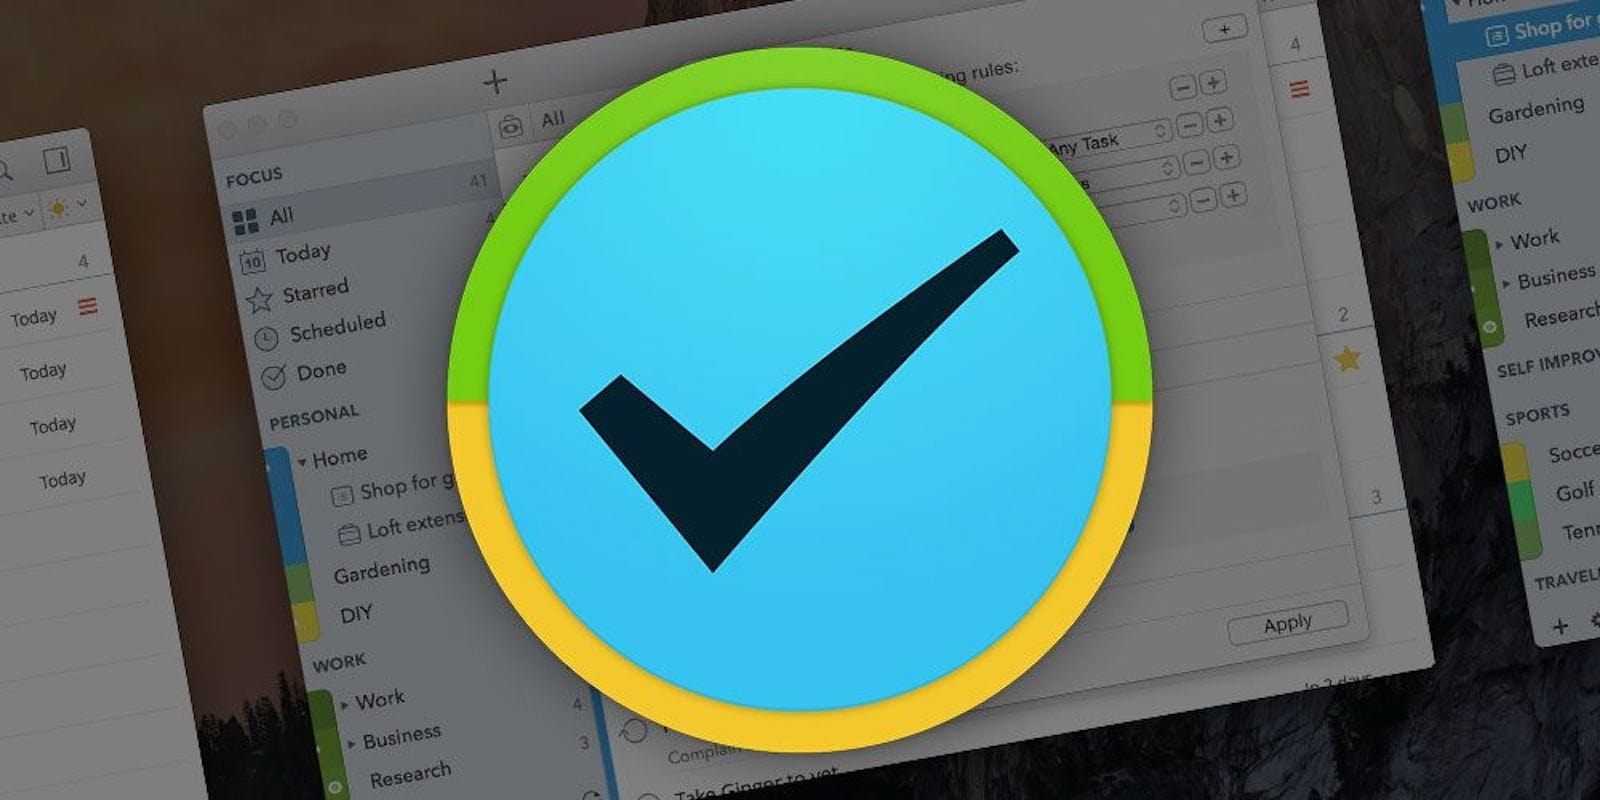 Manage all your daily tasks with 2Do, a great Mac productivity app.